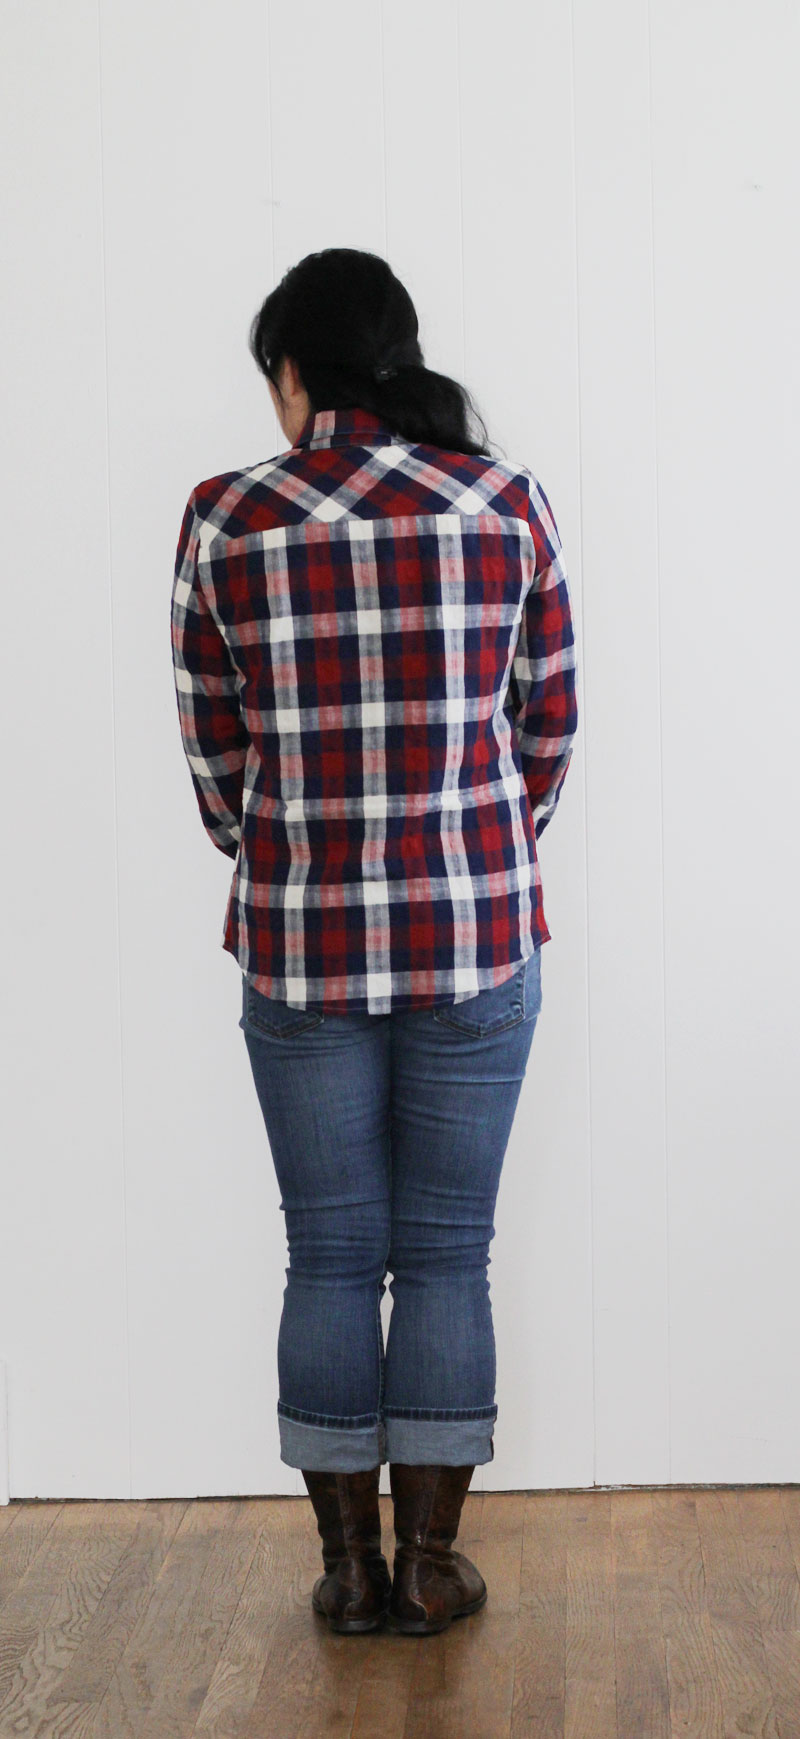 s1538-plaid-shirt4